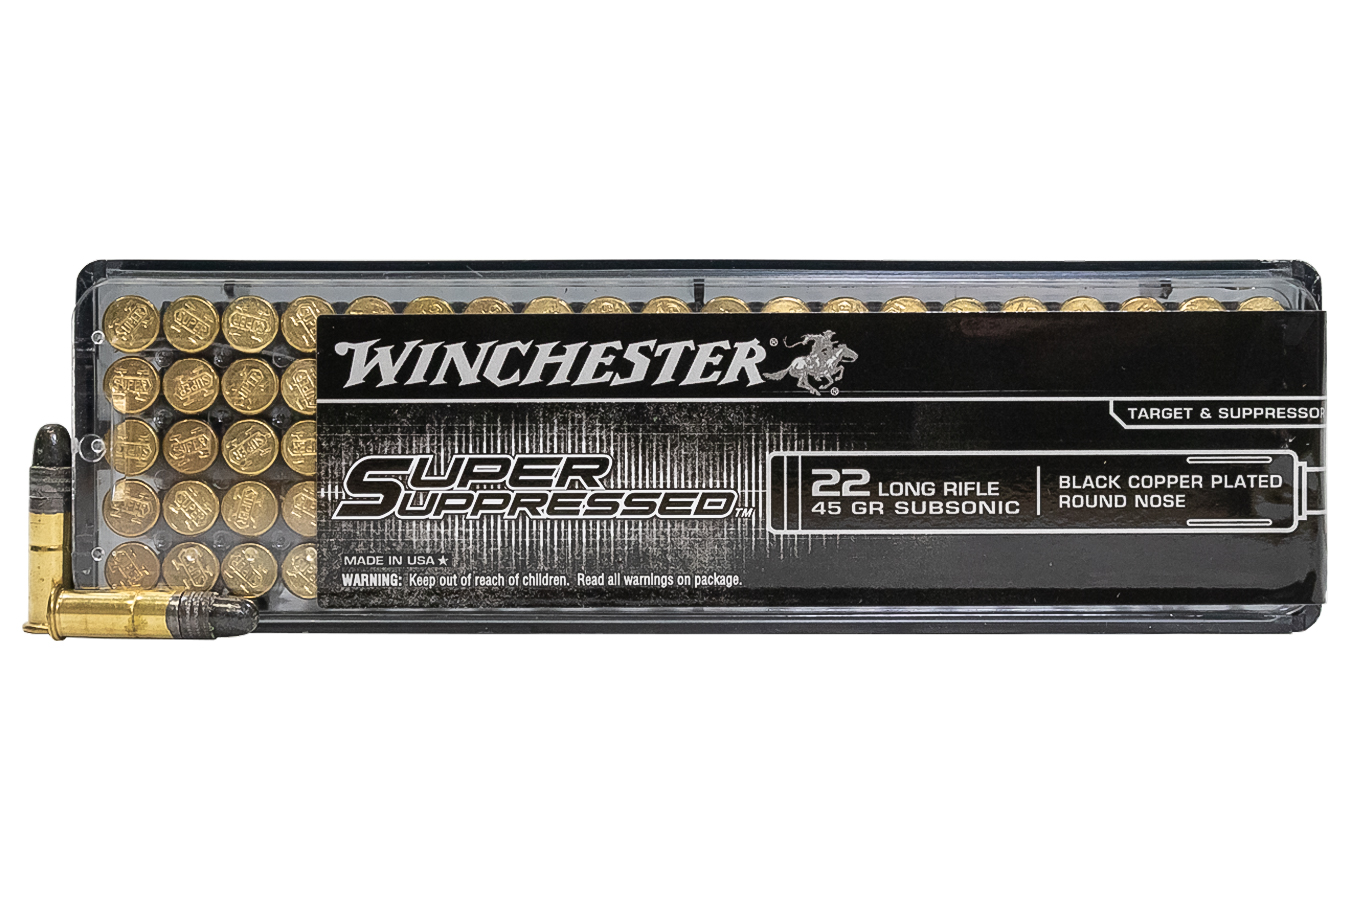 WINCHESTER AMMO 22 LR 45 GR LRN SUPER SUPPRESSED